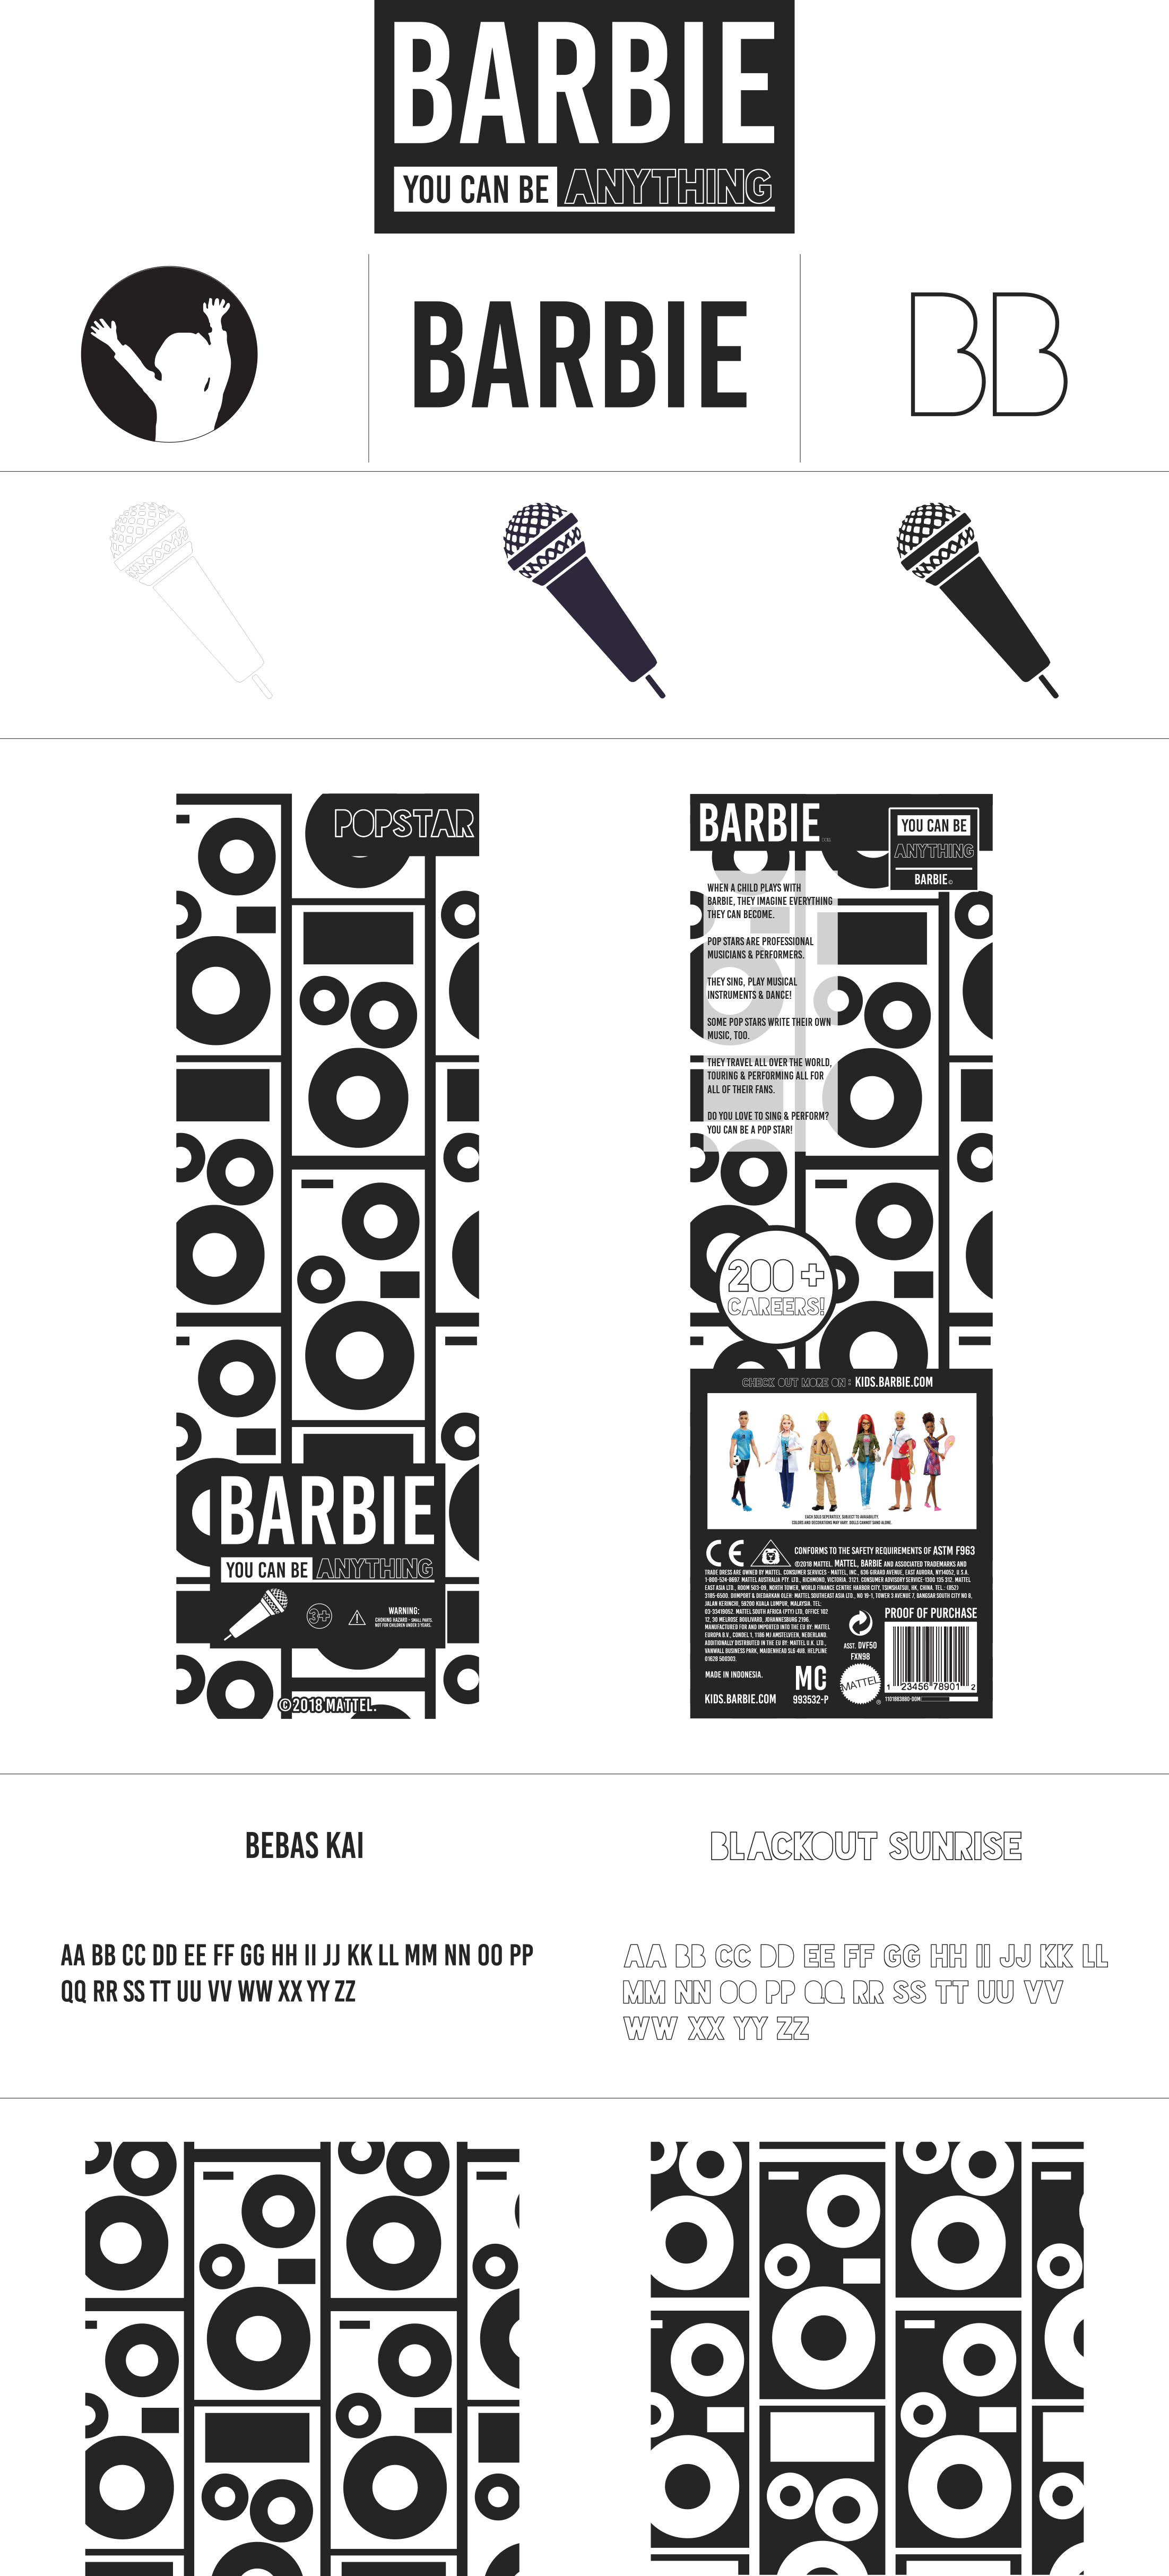 Barbie REBRAND Branding Board